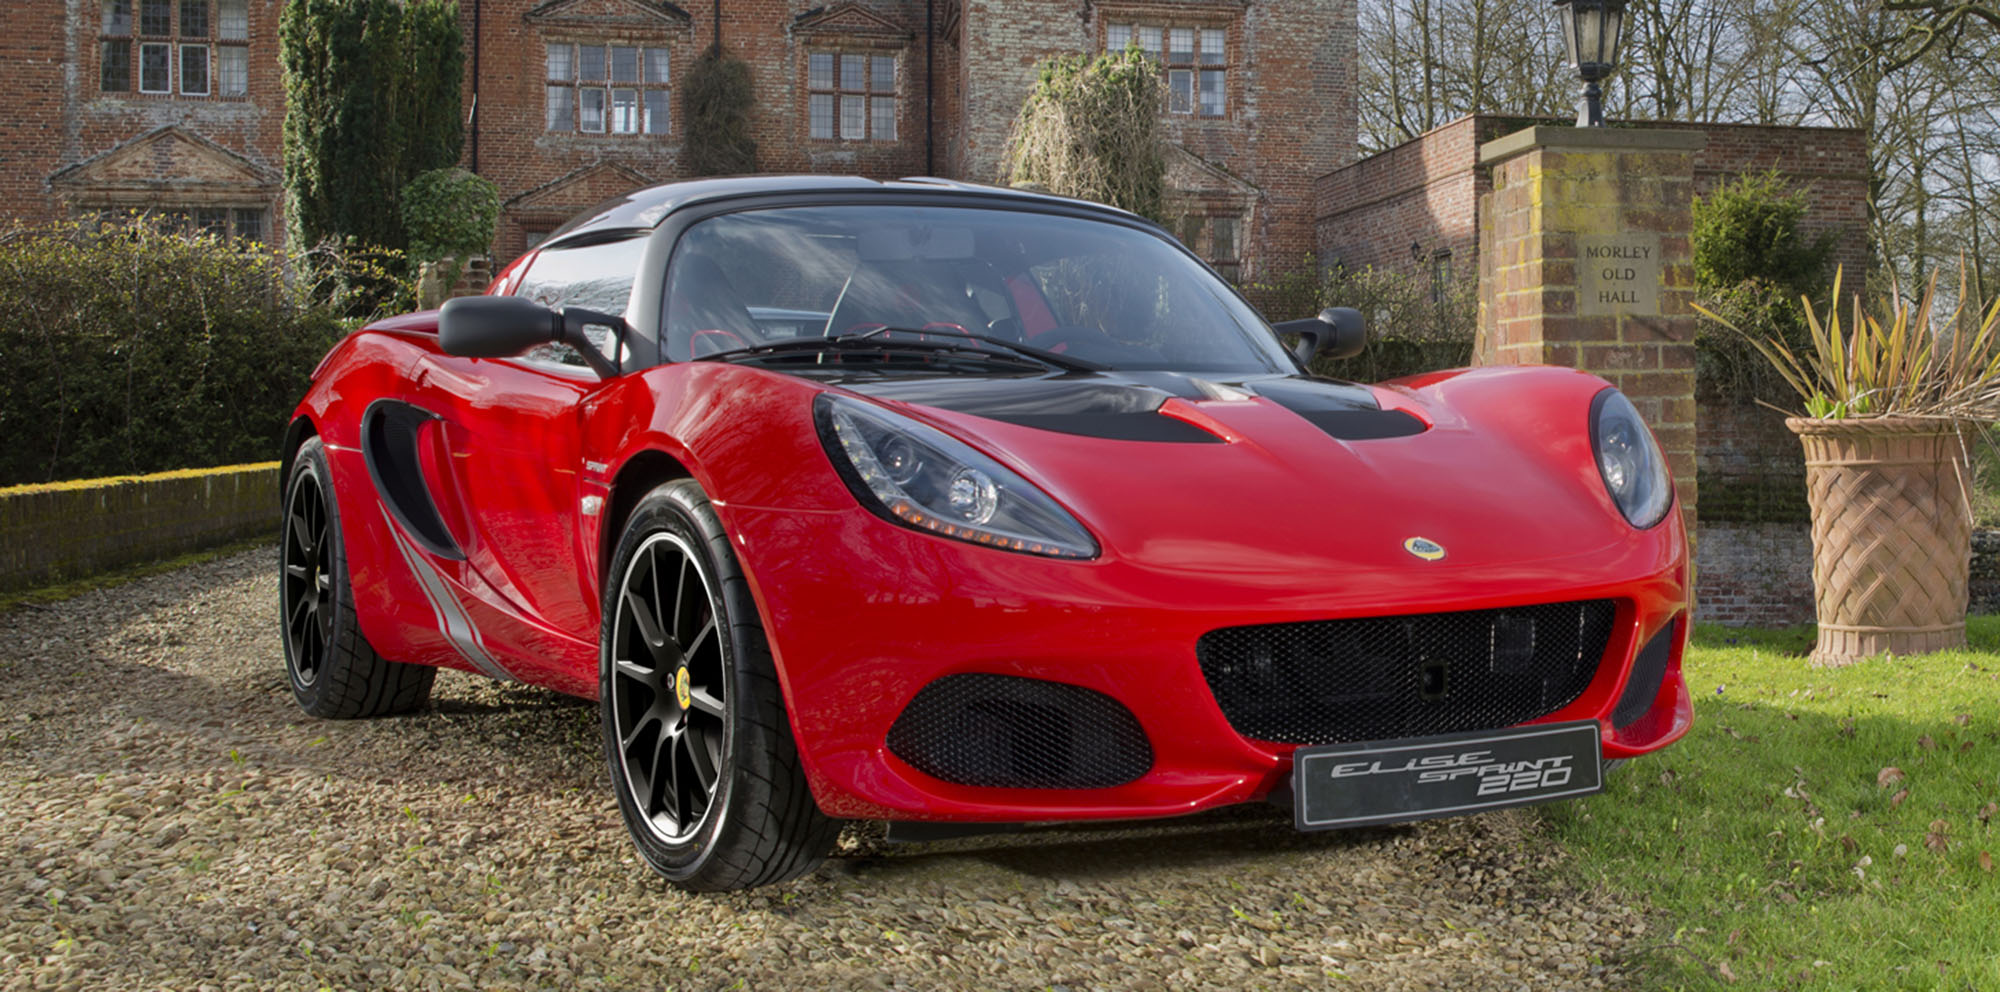 2017 lotus elise sprint unveiled with less weight changes for rest of range photos 1 of 4. Black Bedroom Furniture Sets. Home Design Ideas